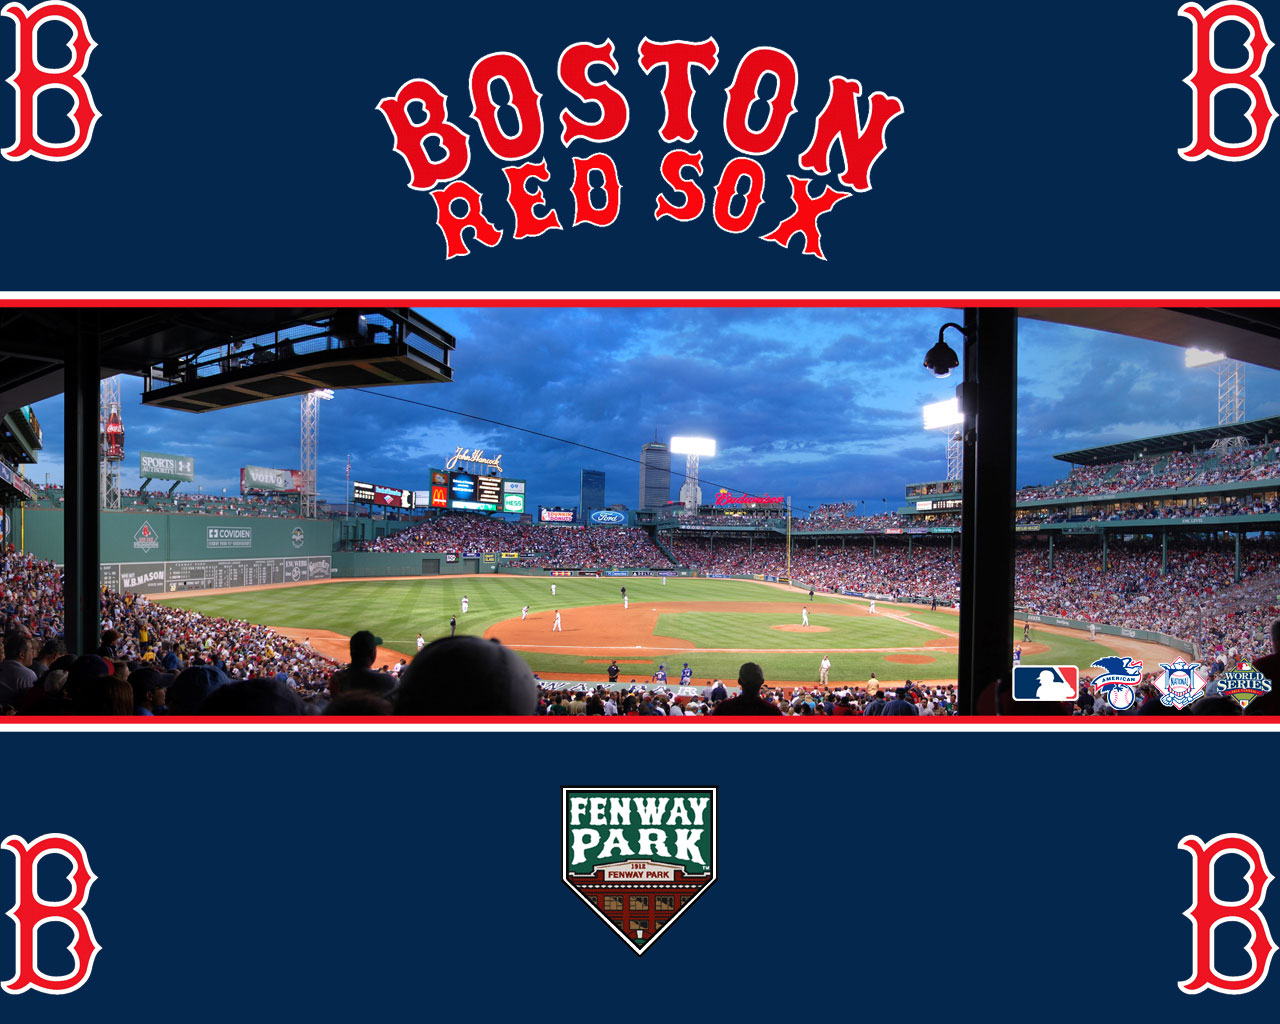 Major league baseball stadiums stadium dimensions mlb - Red sox iphone background ...